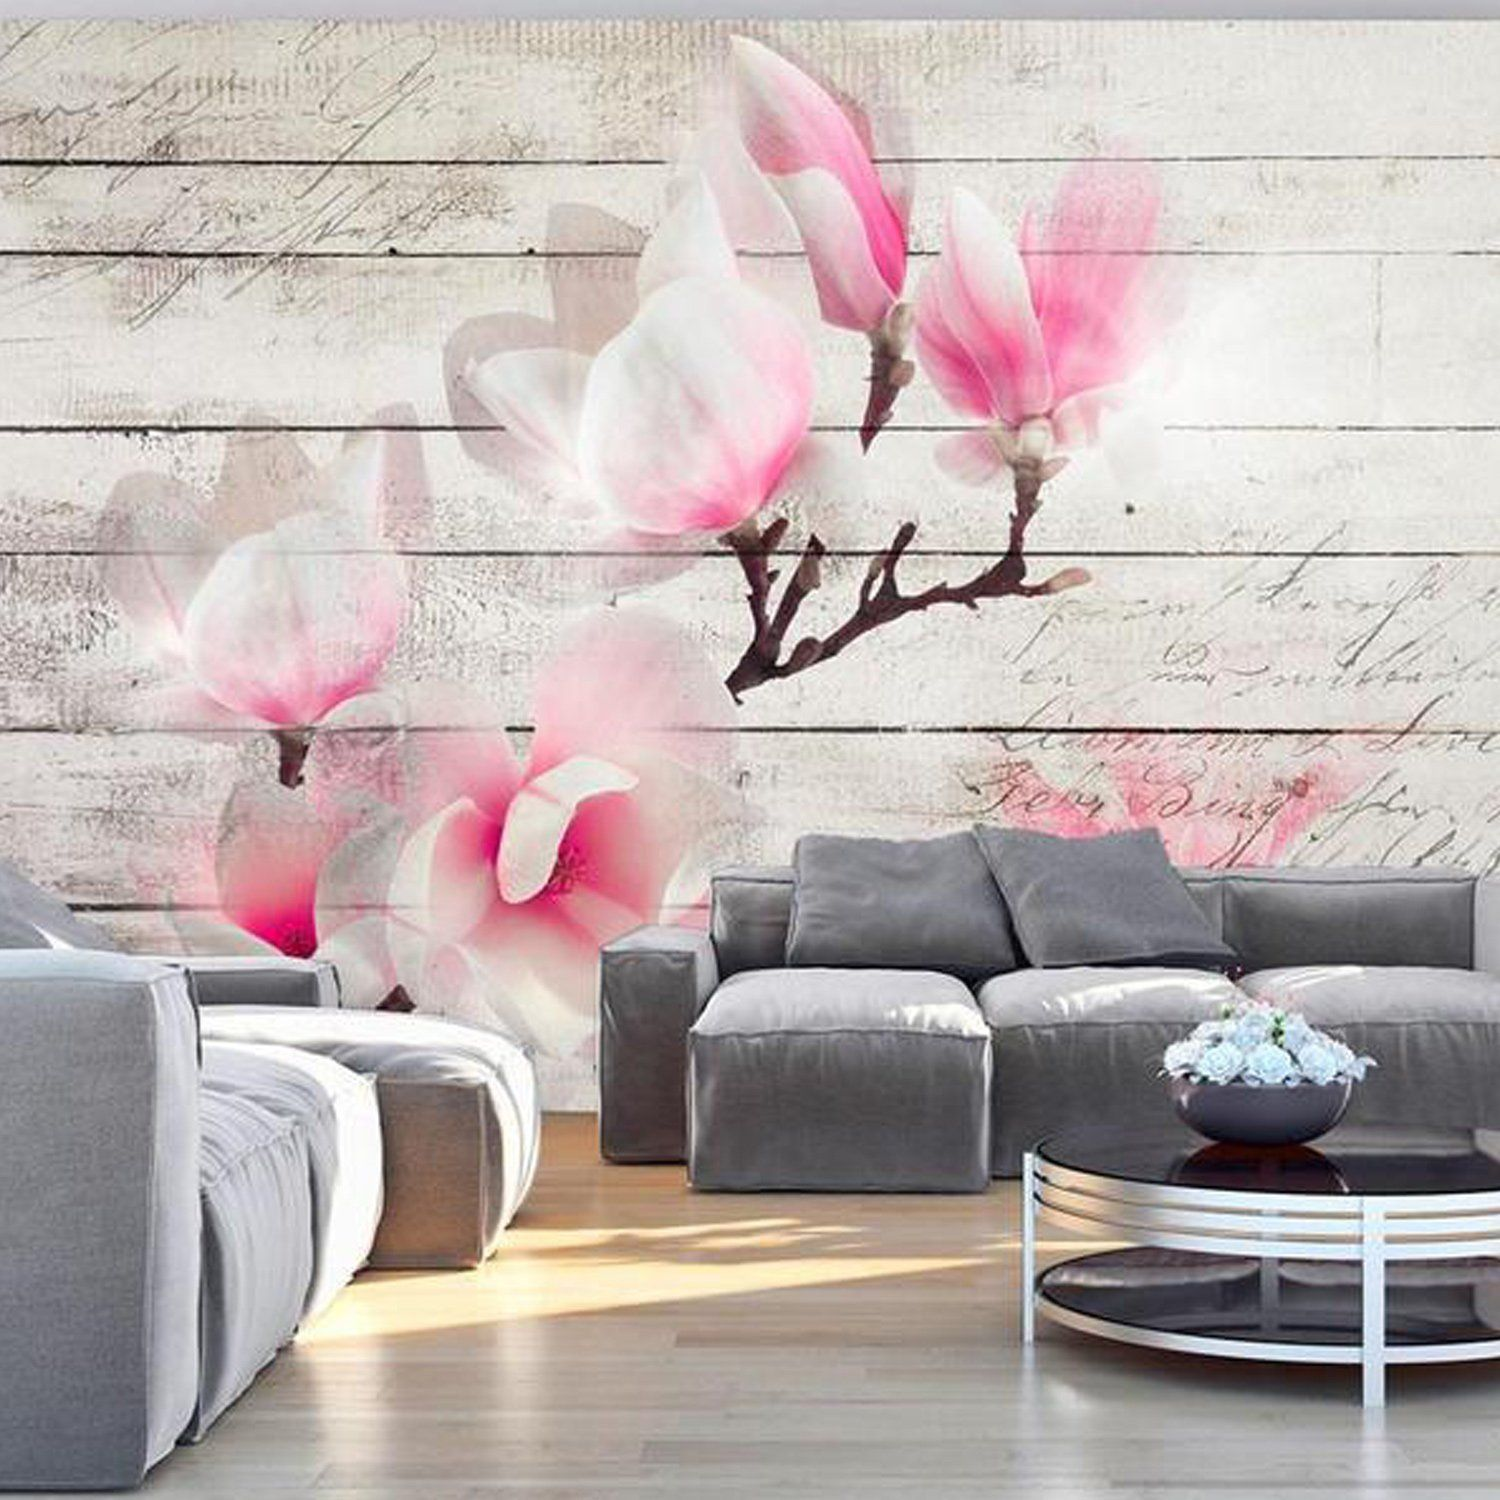 Magnolia flower mural wallpaper. 3d wallpaper floral and